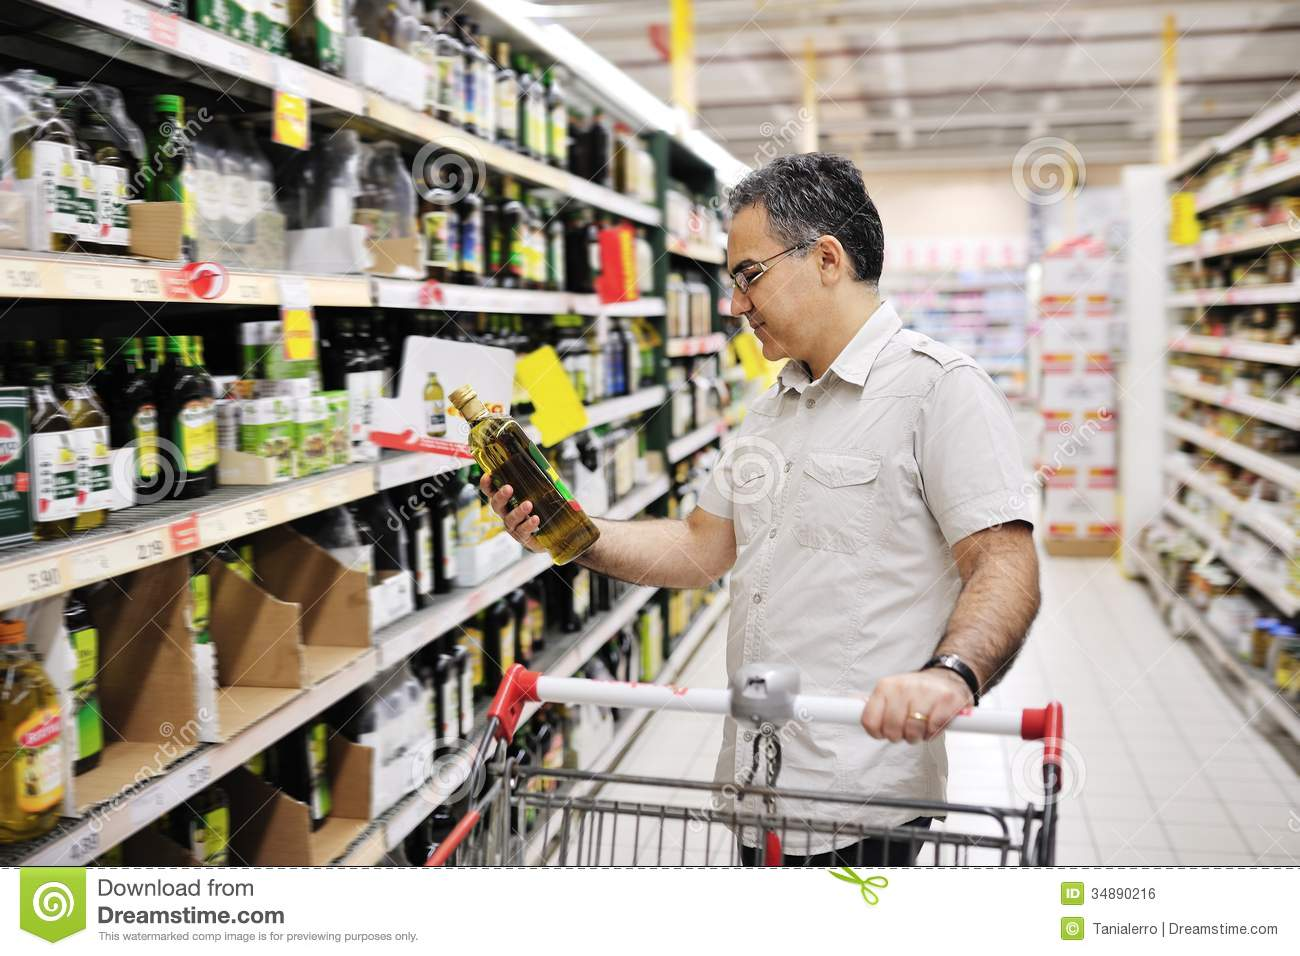 Business Plan Examples << Food And Beverage Business Man Shopping And Looking At Food In Supermarket Royalty